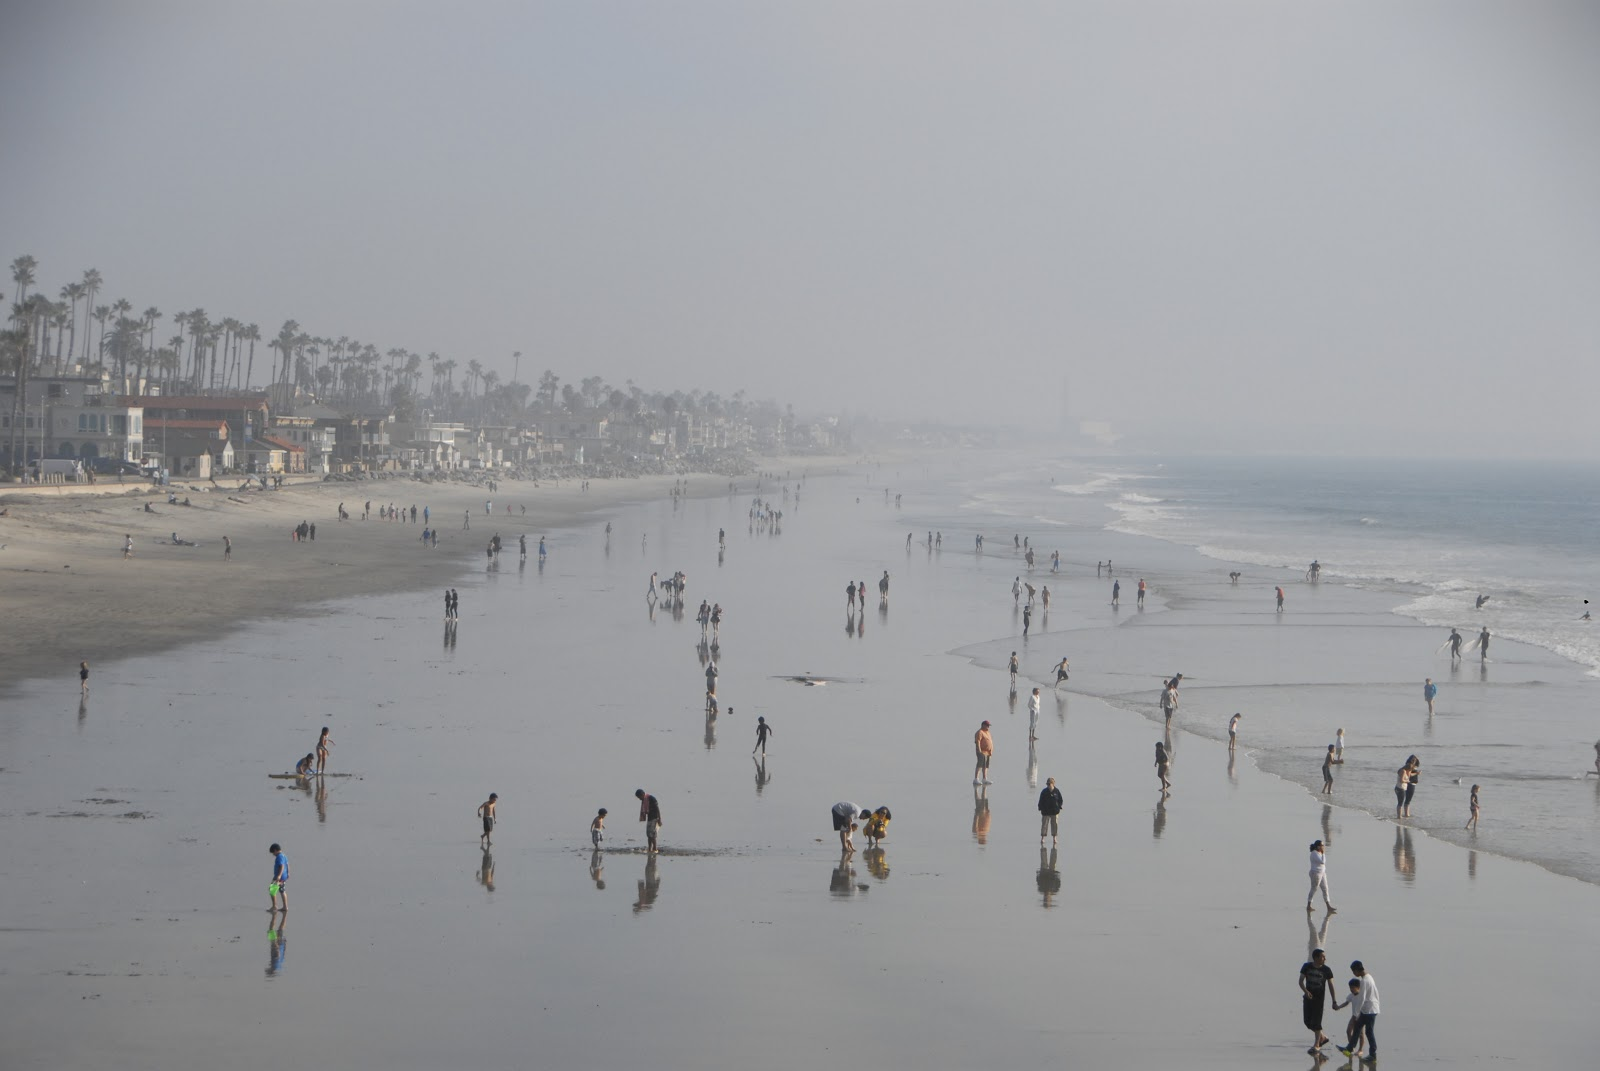 foggy day at the beach: LadyD Books